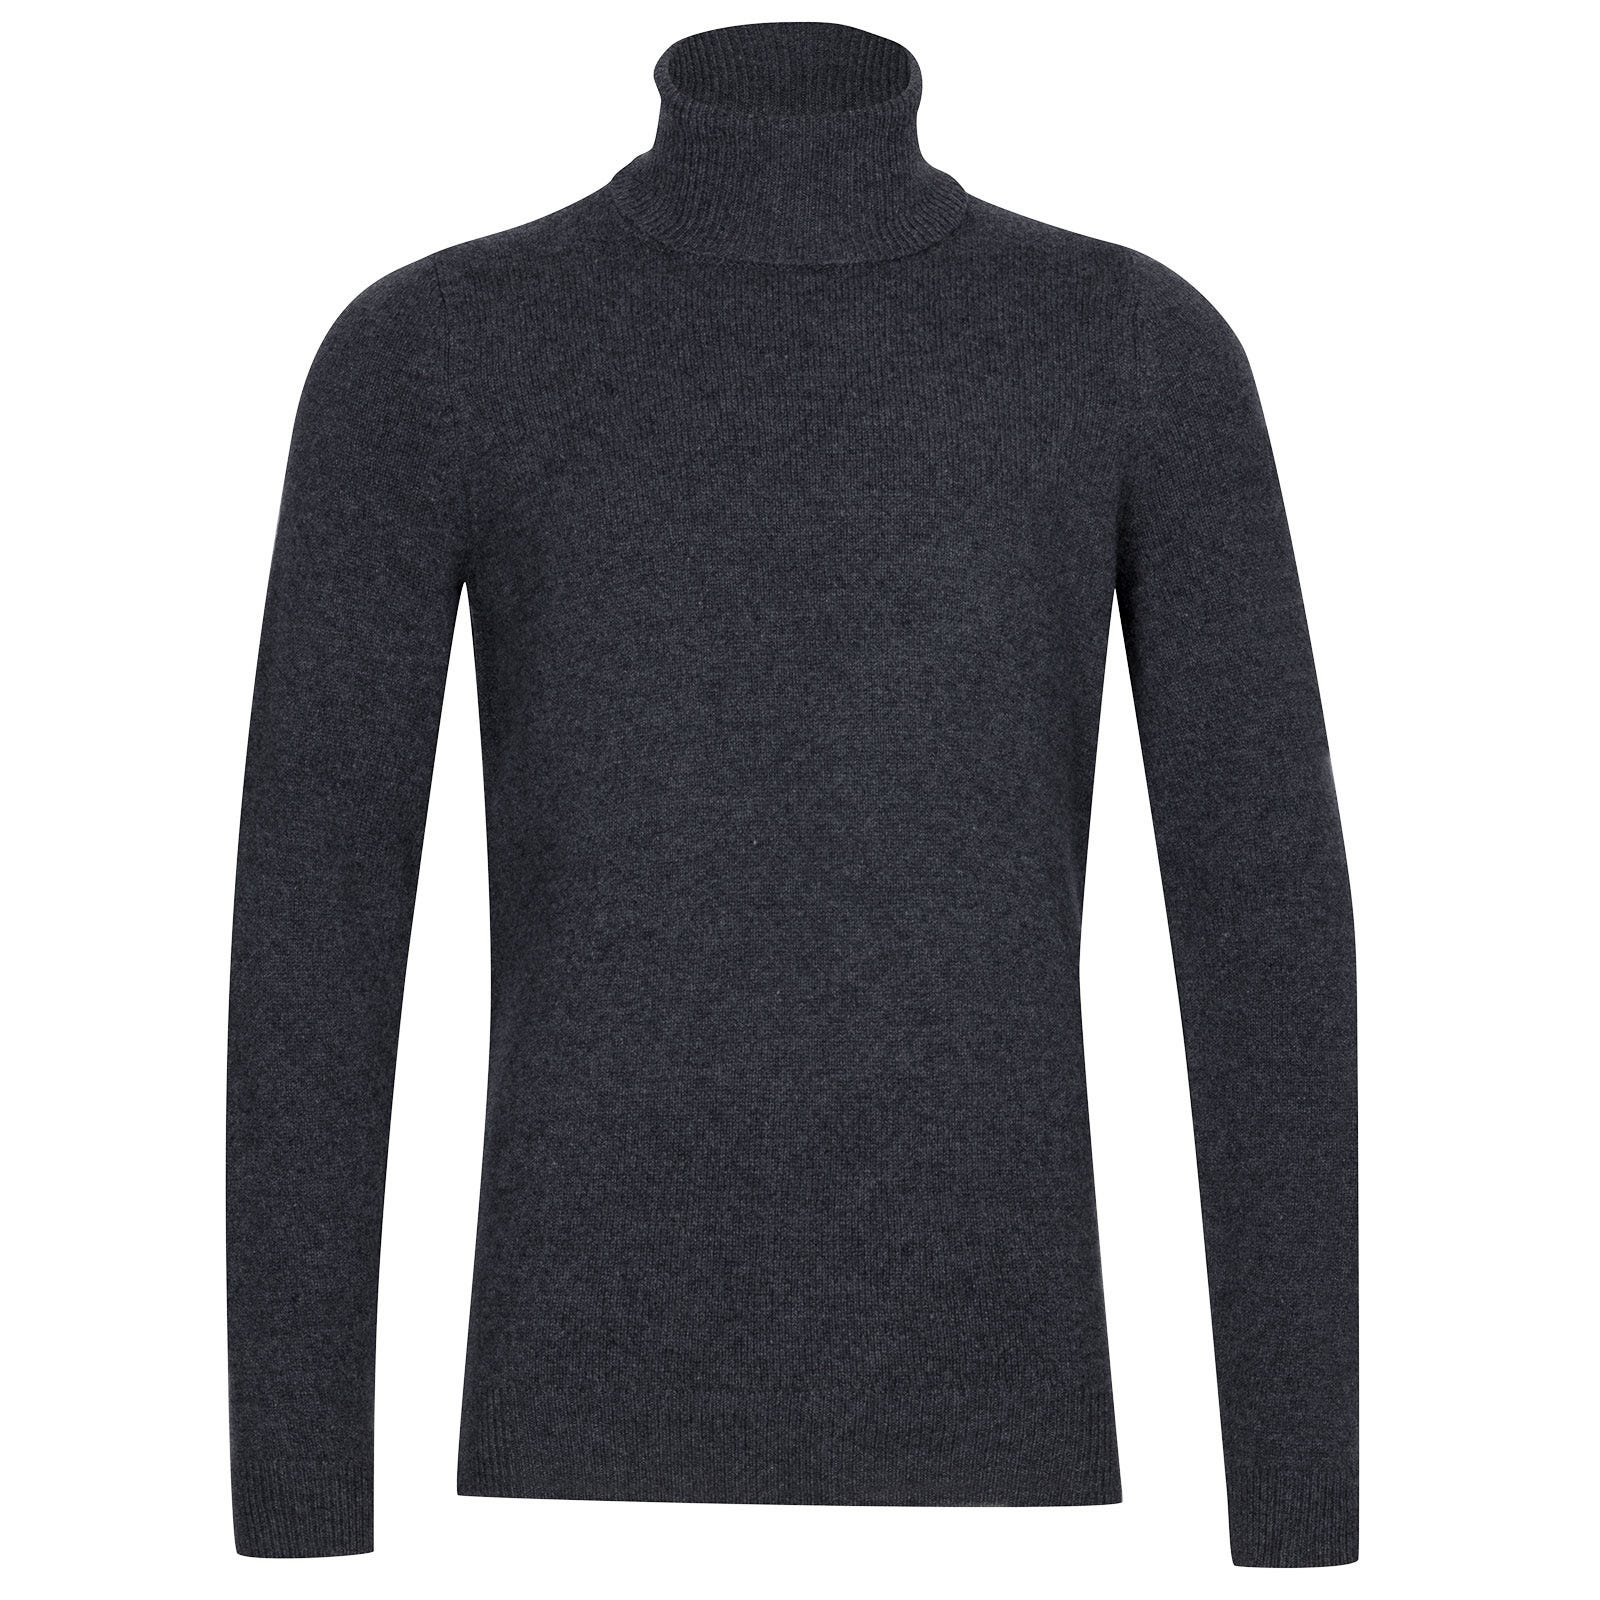 John Smedley Zachary Wool and Cashmere Pullover in Charcoal-M